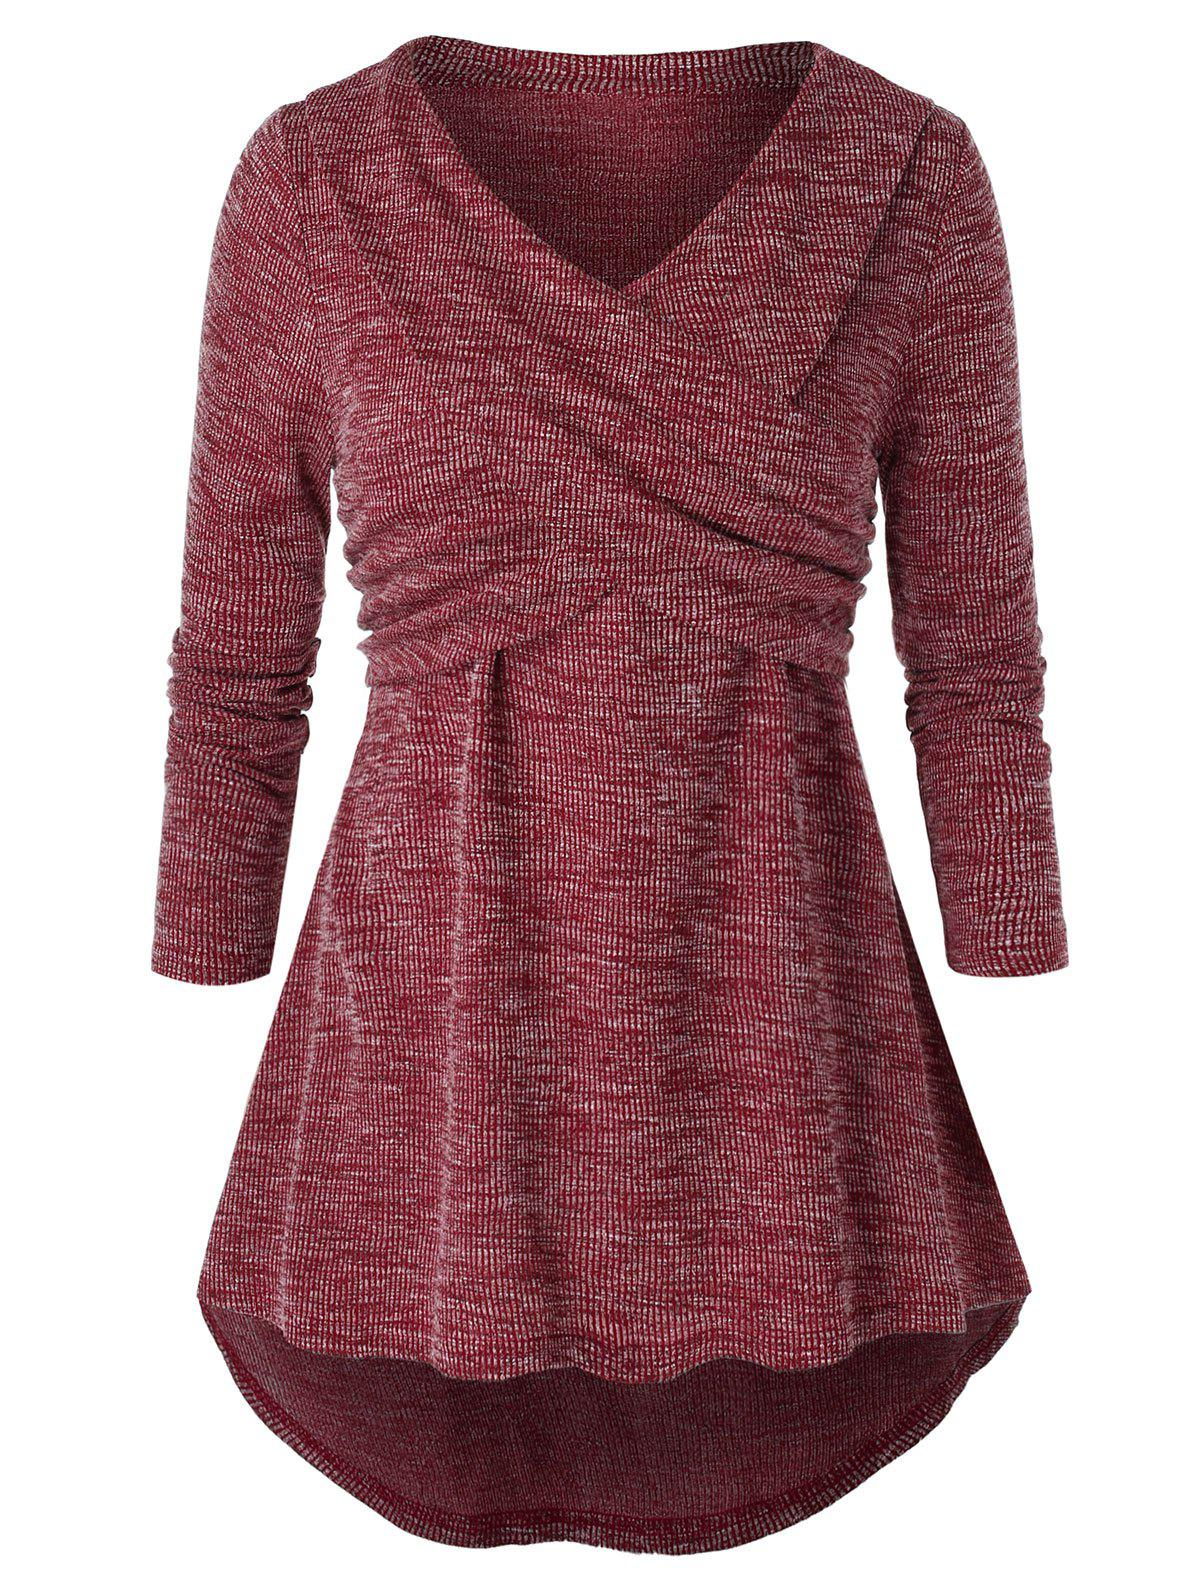 Plus Size High Low V Neck Space Dye Sweater - CHERRY RED 5X